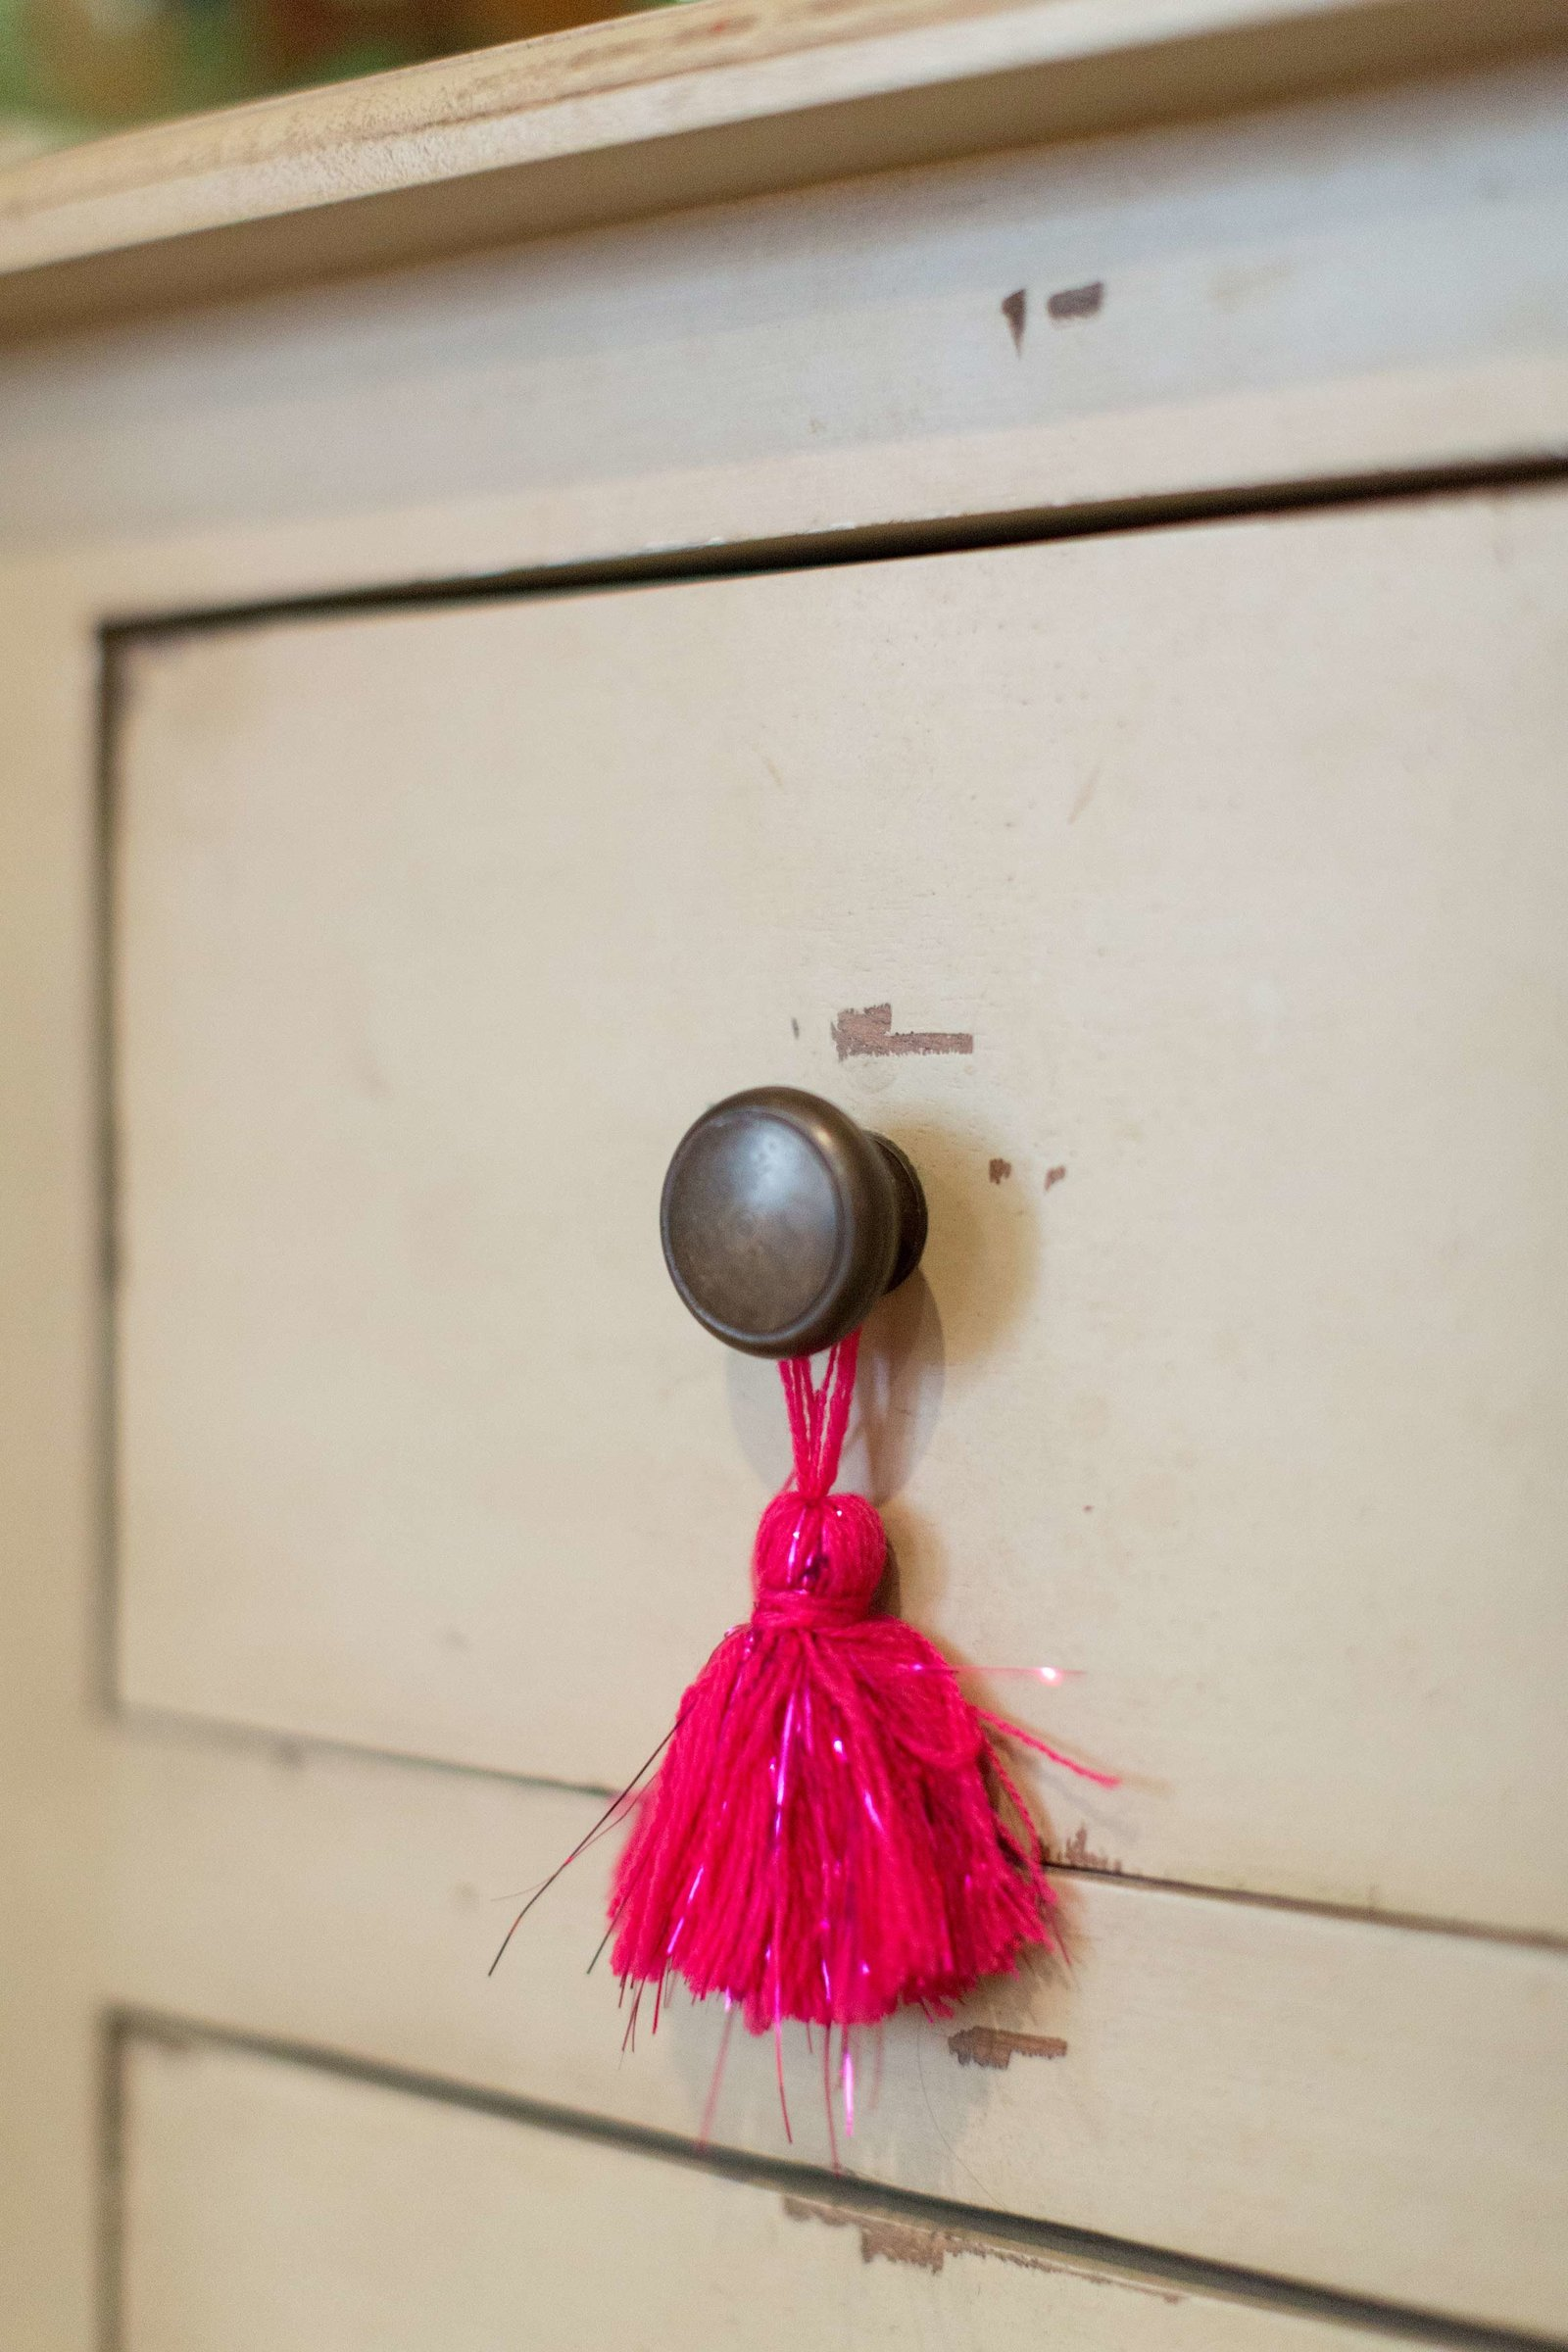 A drawer pull with hanging hot pink tassels.